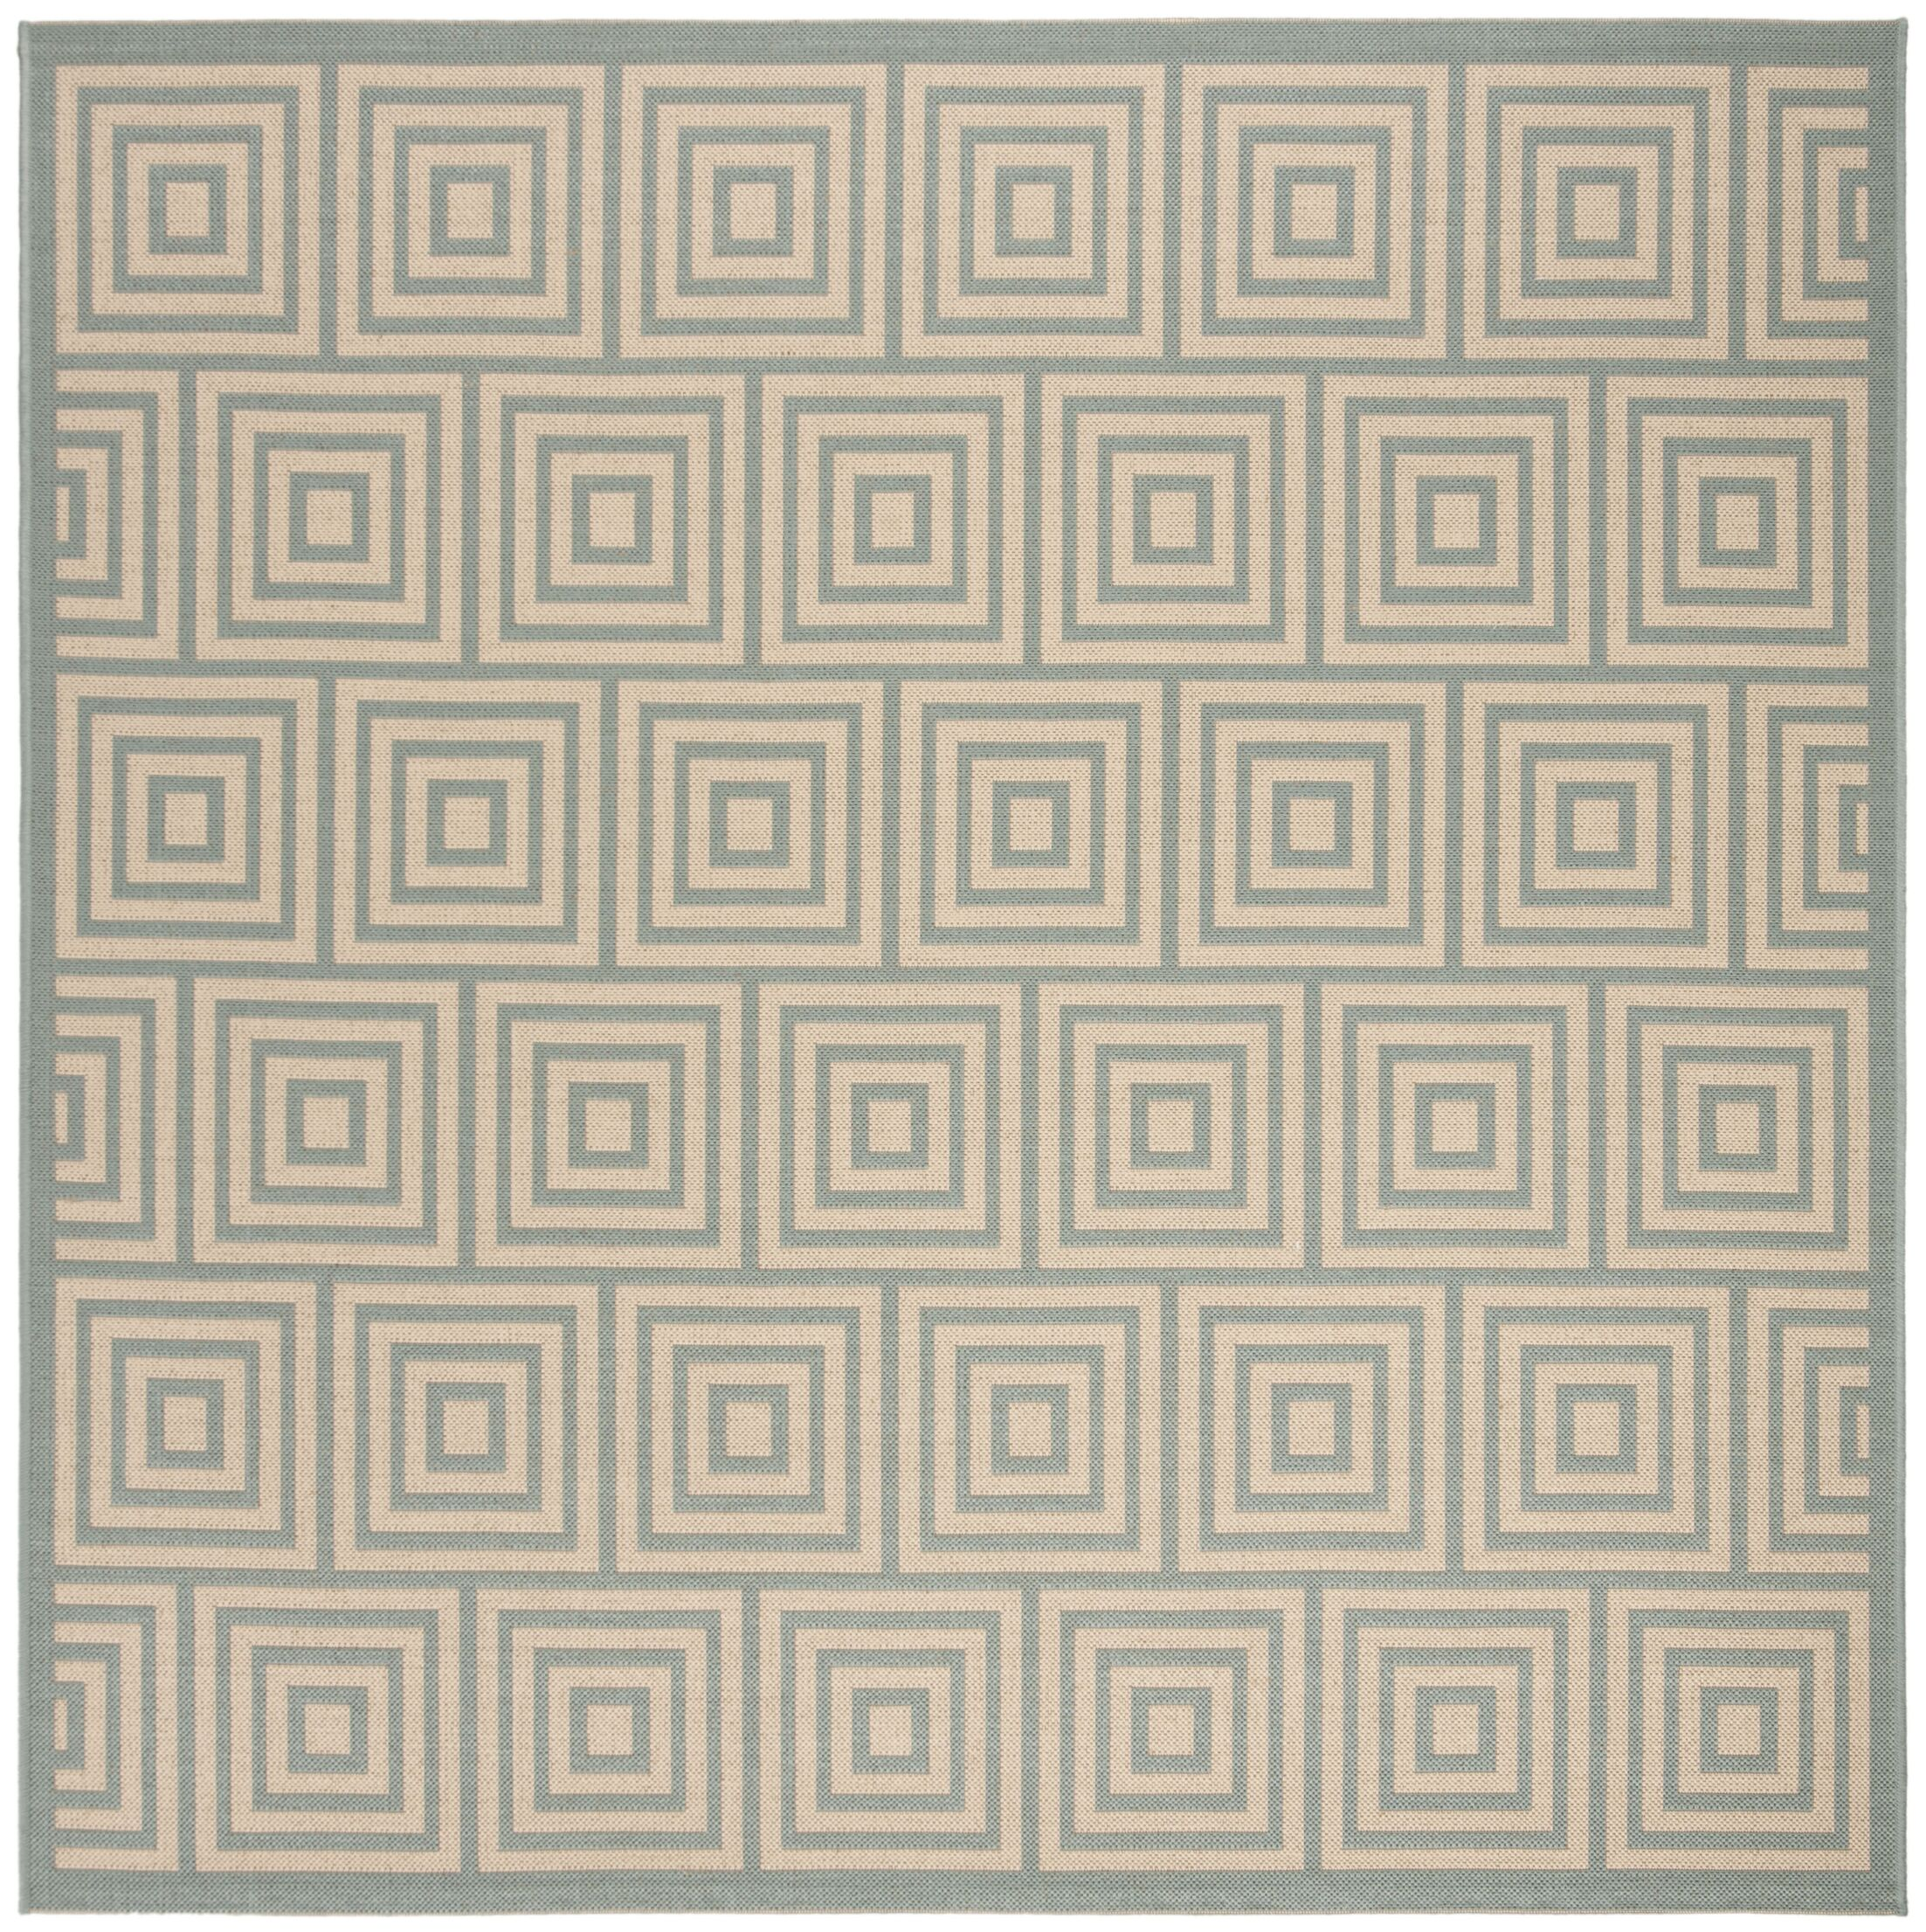 Kallias Cream/Aqua Area Rug Rug Size: Square 6'7